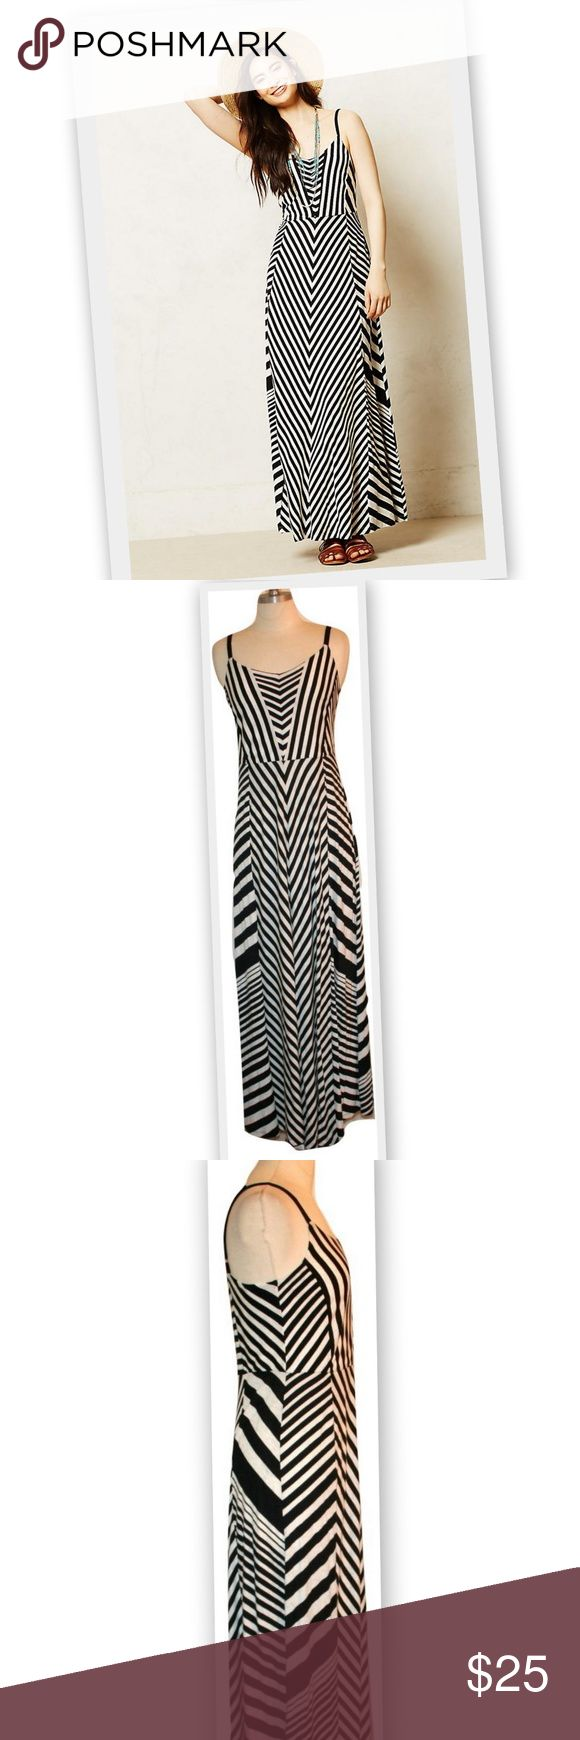 """Anthropologie Lilka Meter Stripe Maxi Dress Anthropologie Lilka """"Meter Stripe"""" dress in black and white.  Weekends call for cozy, throw-on-and-go pieces that can take you from morning lounge sessions to afternoon excursions and even out to dinner, like Lilka's pima cotton dress.  There are 3 tiny holes on the front of the dress, but they are not obvious without close inspection.   Marked size S  Length 51 1/4"""" Anthropologie Dresses Maxi"""